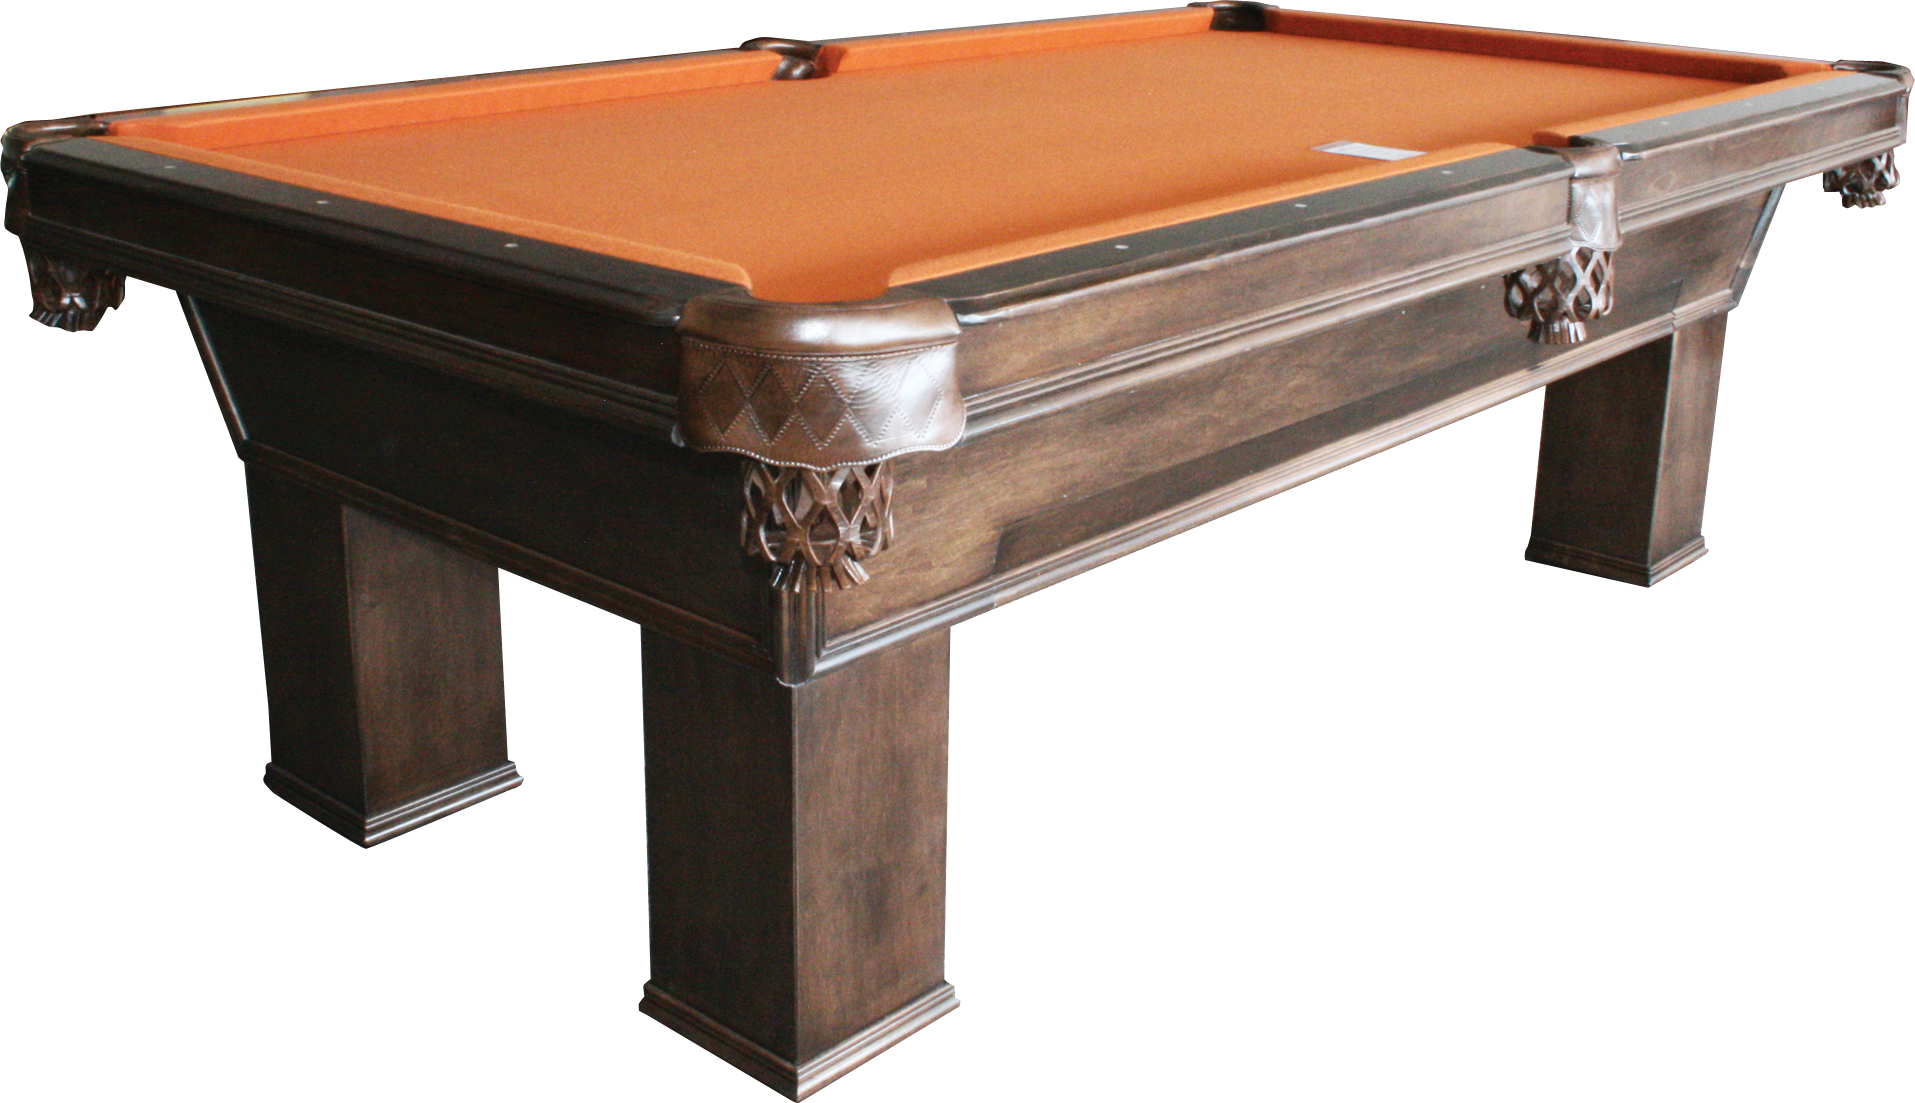 Signature harvard american pool table light walnut with for 10 pool table